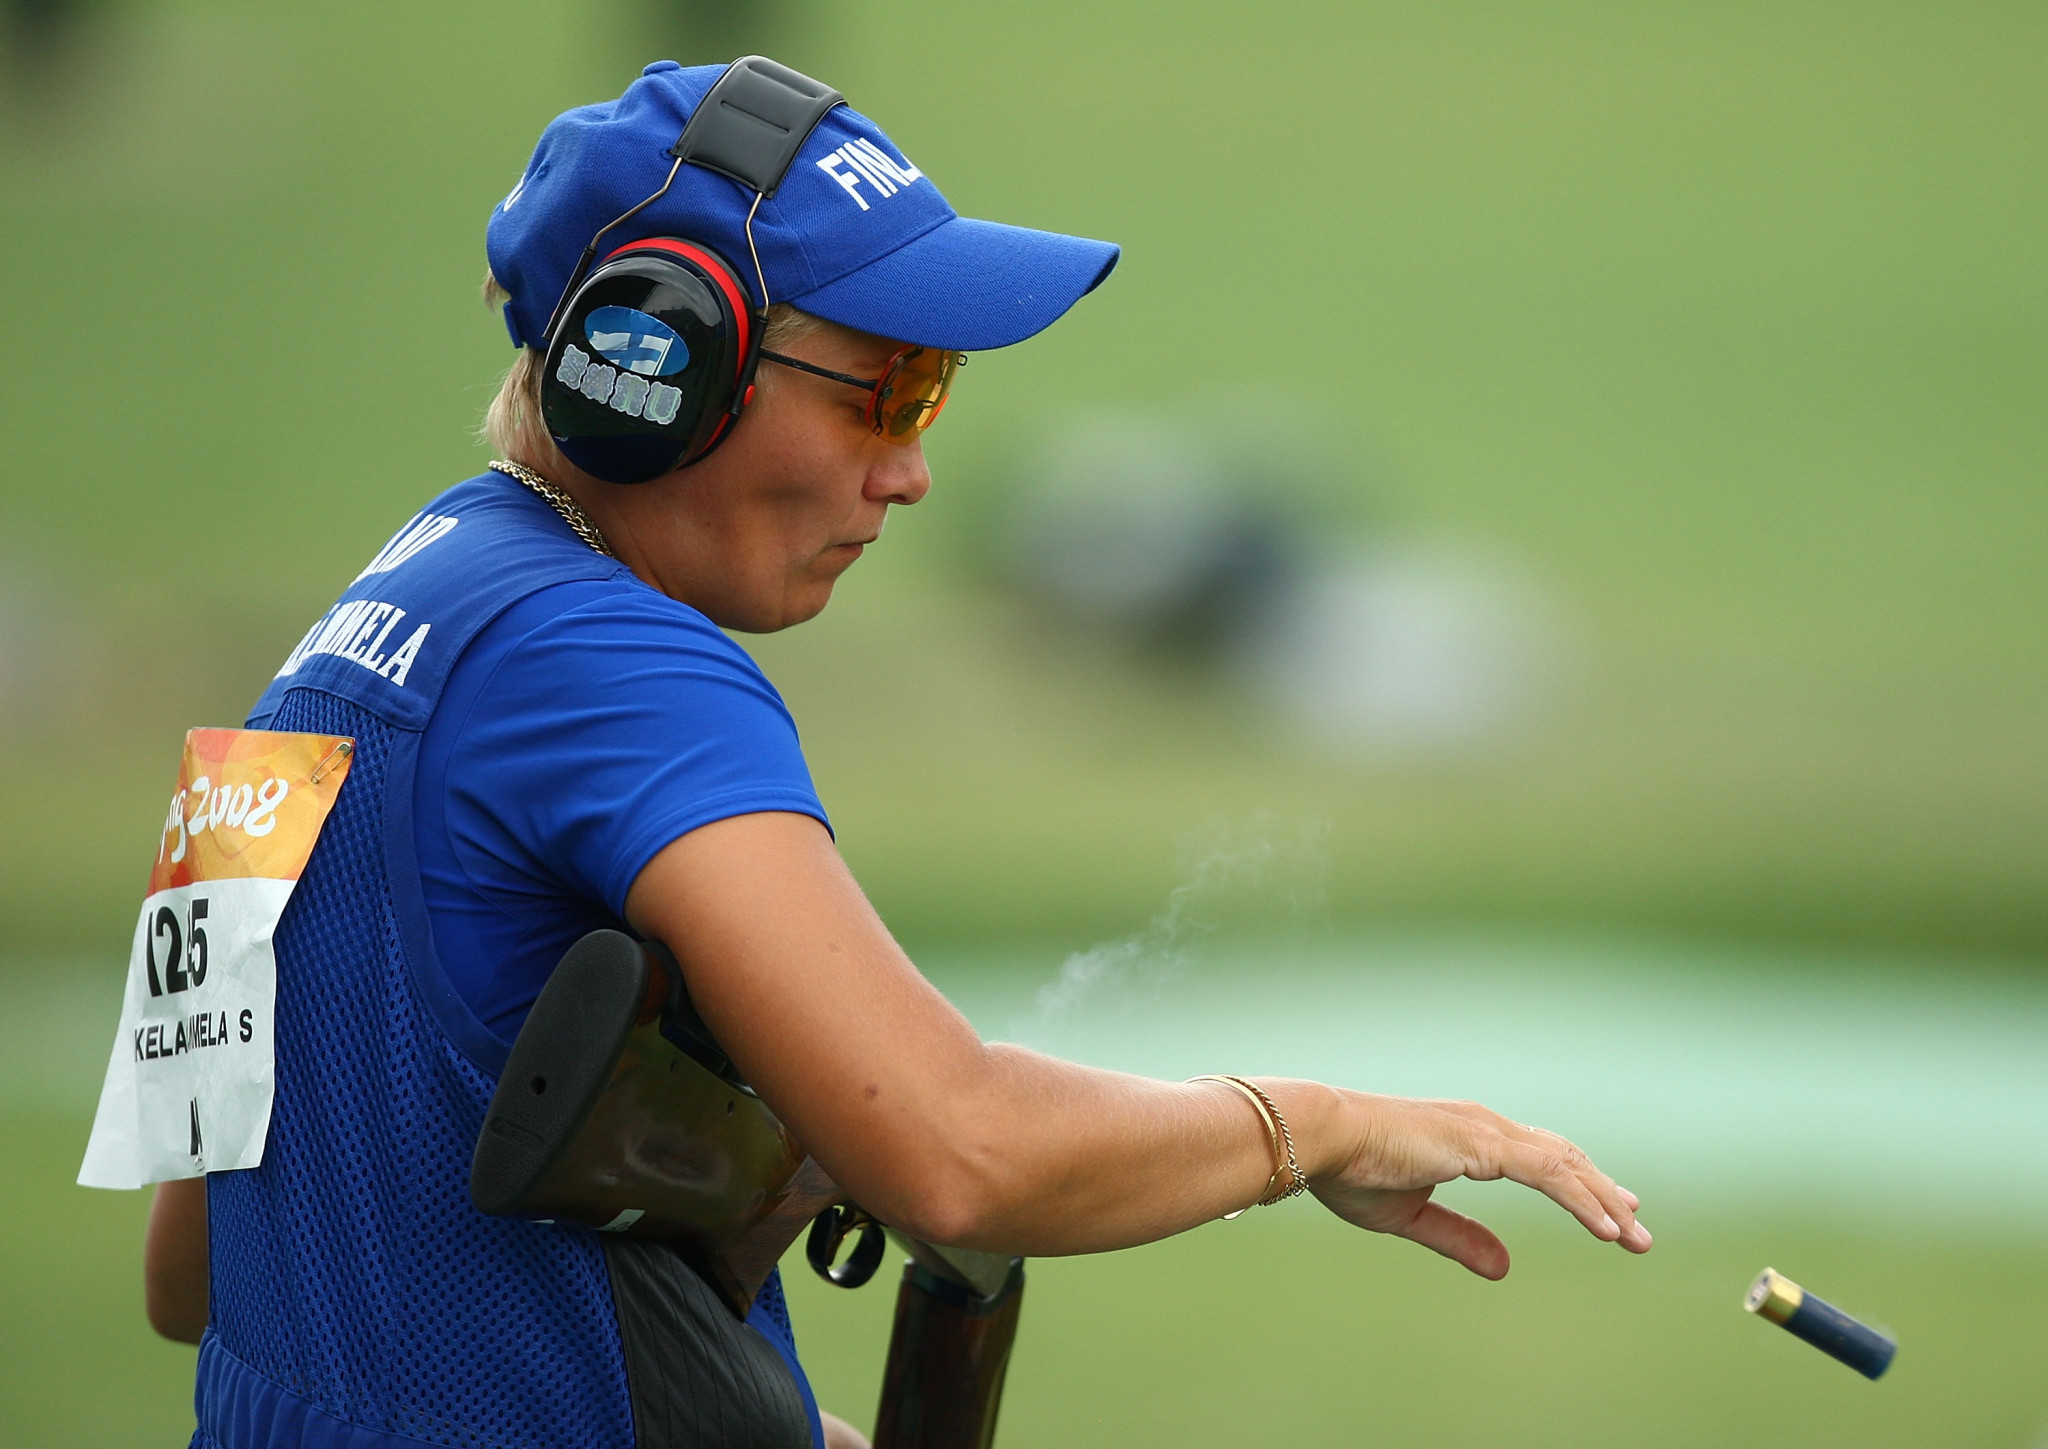 Makela-Nummela sets world record in trap qualifying but then fails to medal at Acapulco ISSF World Cup